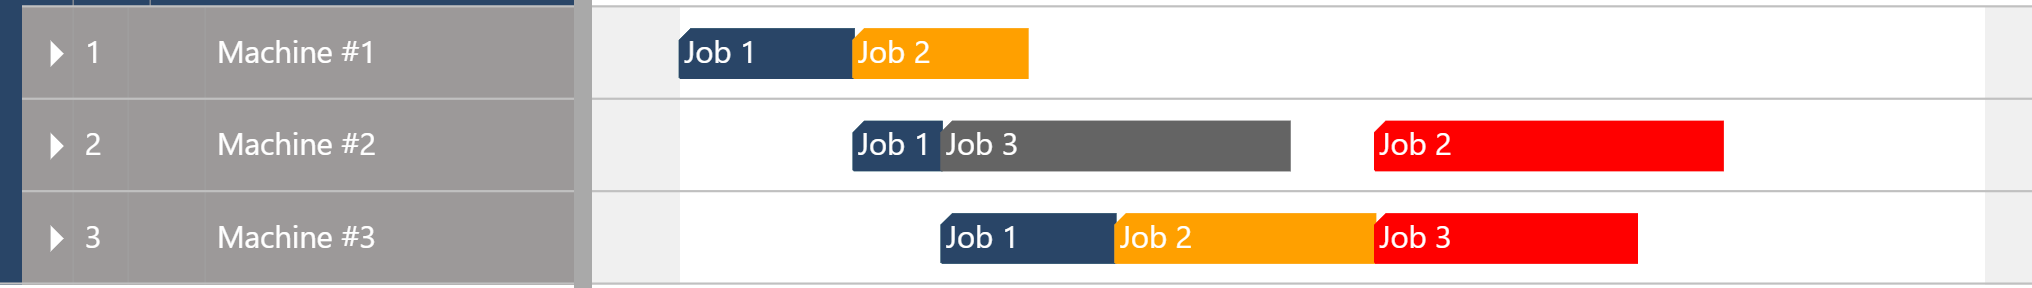 Job Shob Scheduling - Chapter 1 -image5-FIN